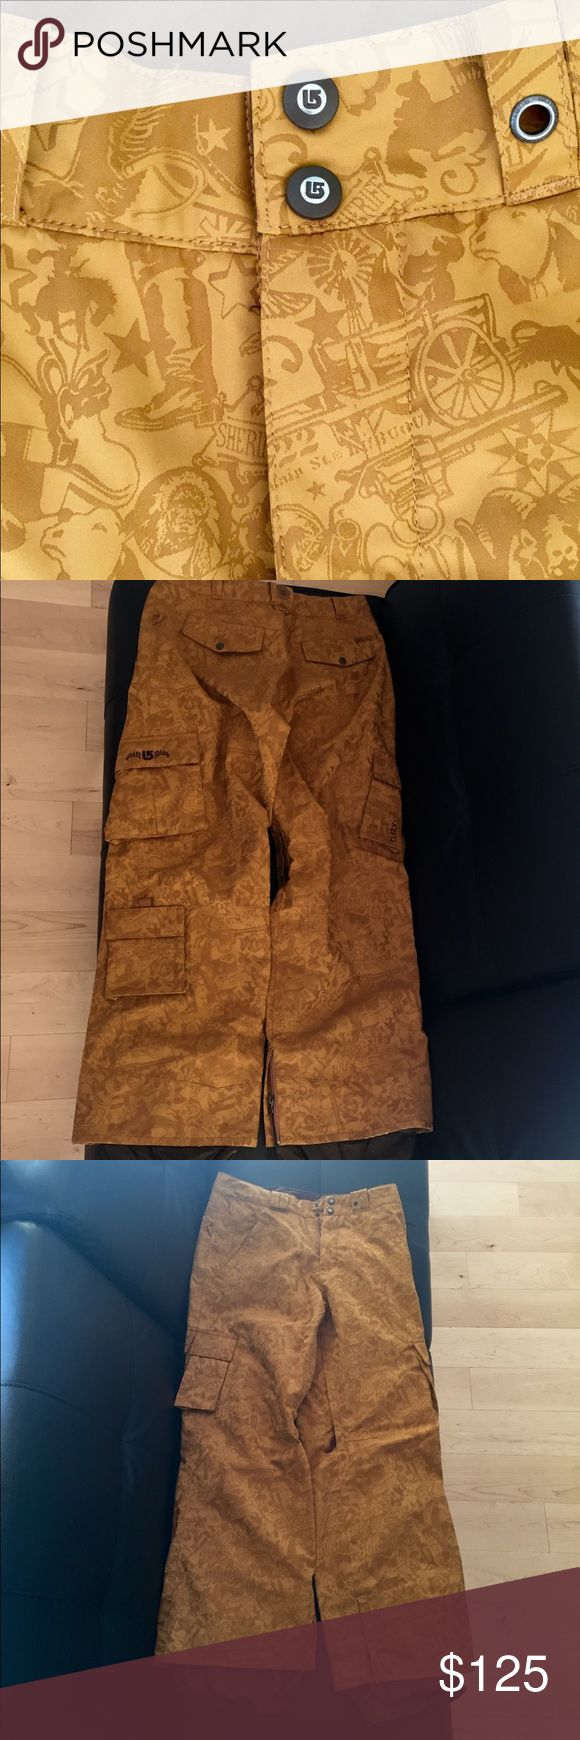 ❄️BURTON Snowboard Pants BURTON Western themed snowboard/ski pants. Wore them once for a half day, just a little too big. SUCH GREAT HIGH-QUALITY PANTS: waterproof, thick, warm, vents inside thighs, multiple pockets, some with zippers. Sick color! Would order in my size but sold out. I cut out the metal hook in the gaiters like I do in all my pants, see the last photo. Make an offer! :) Burton Pants